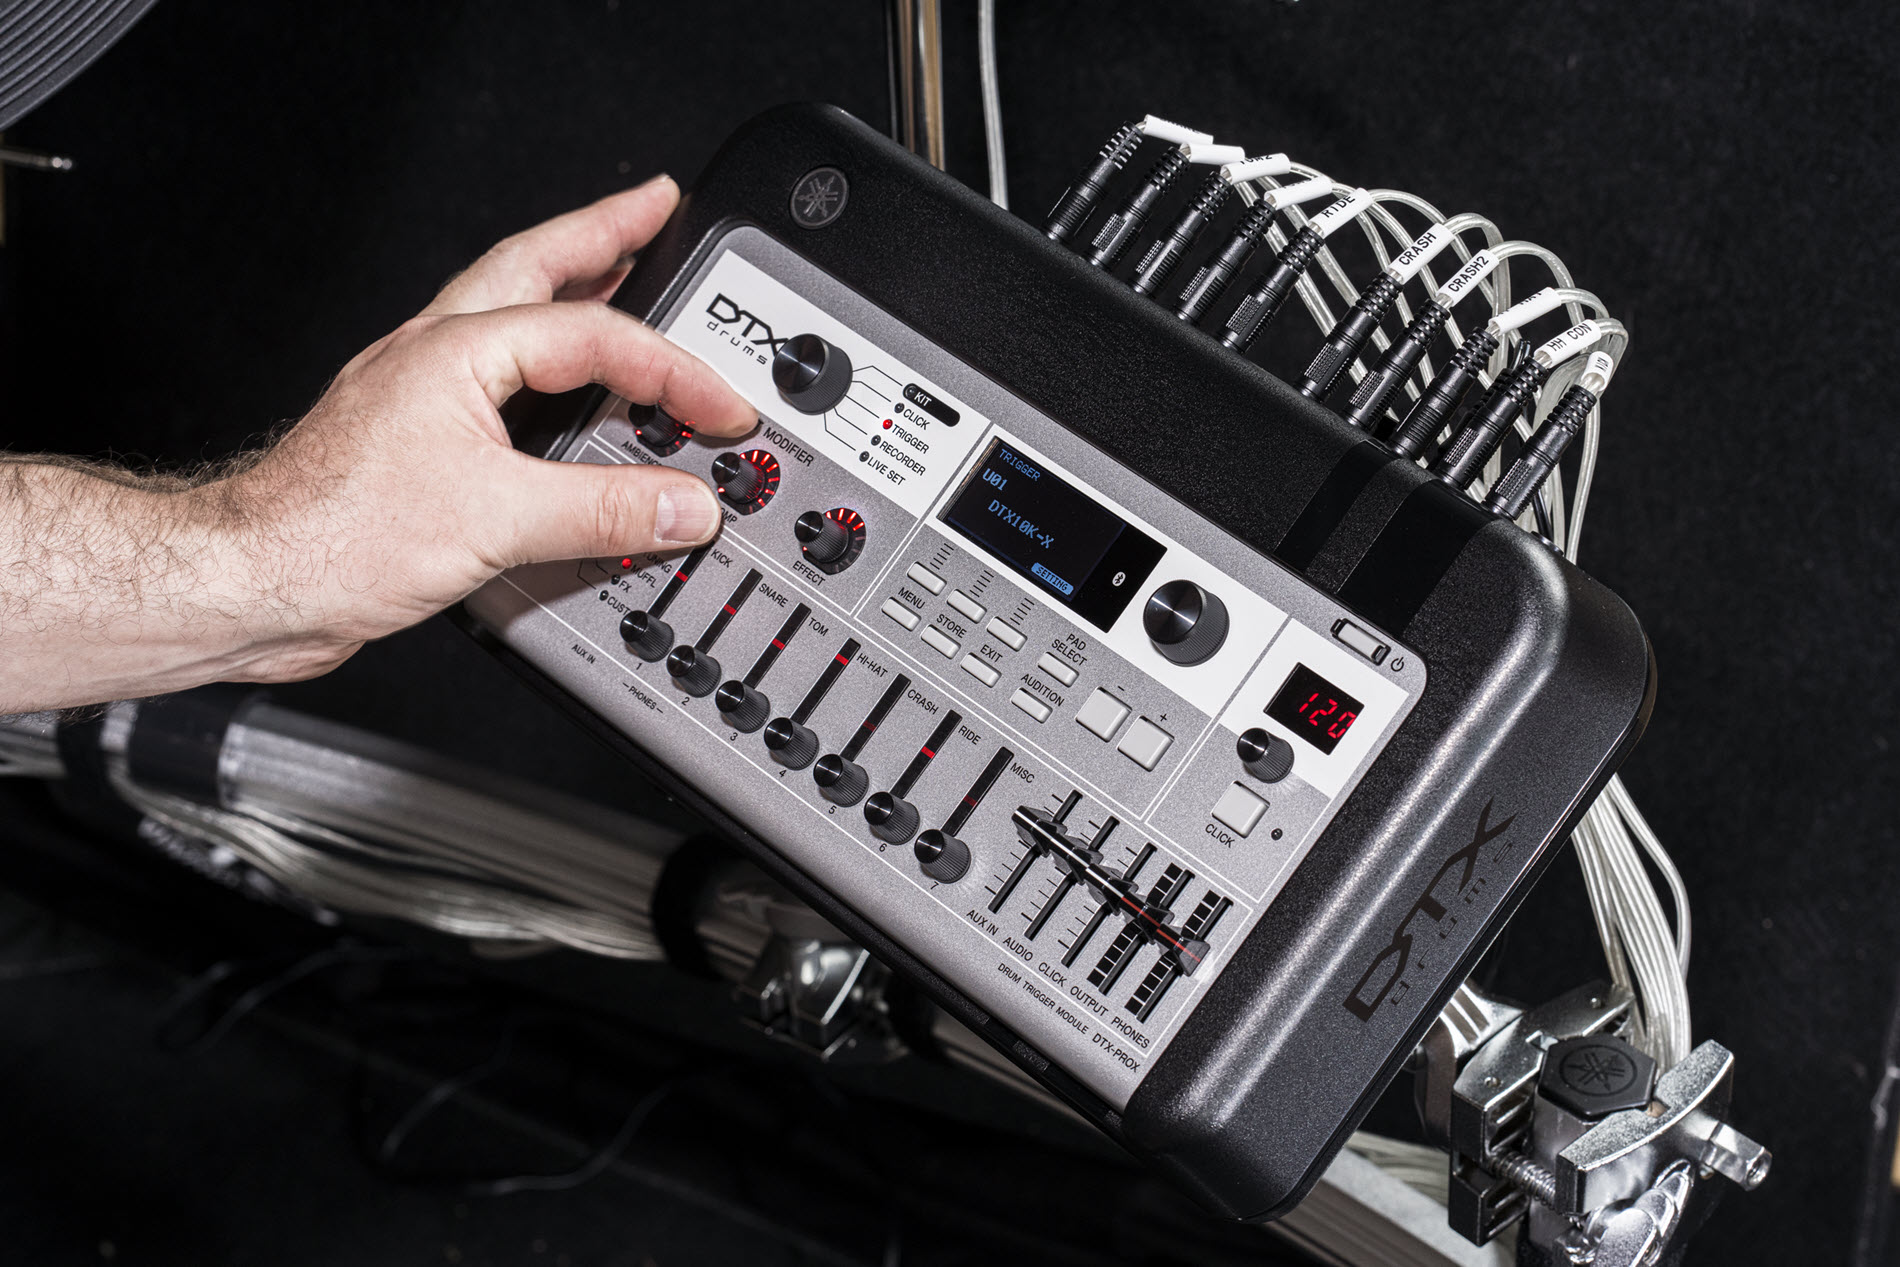 Closeup of someone's hand adjusting the dials on the electronic drum kit.